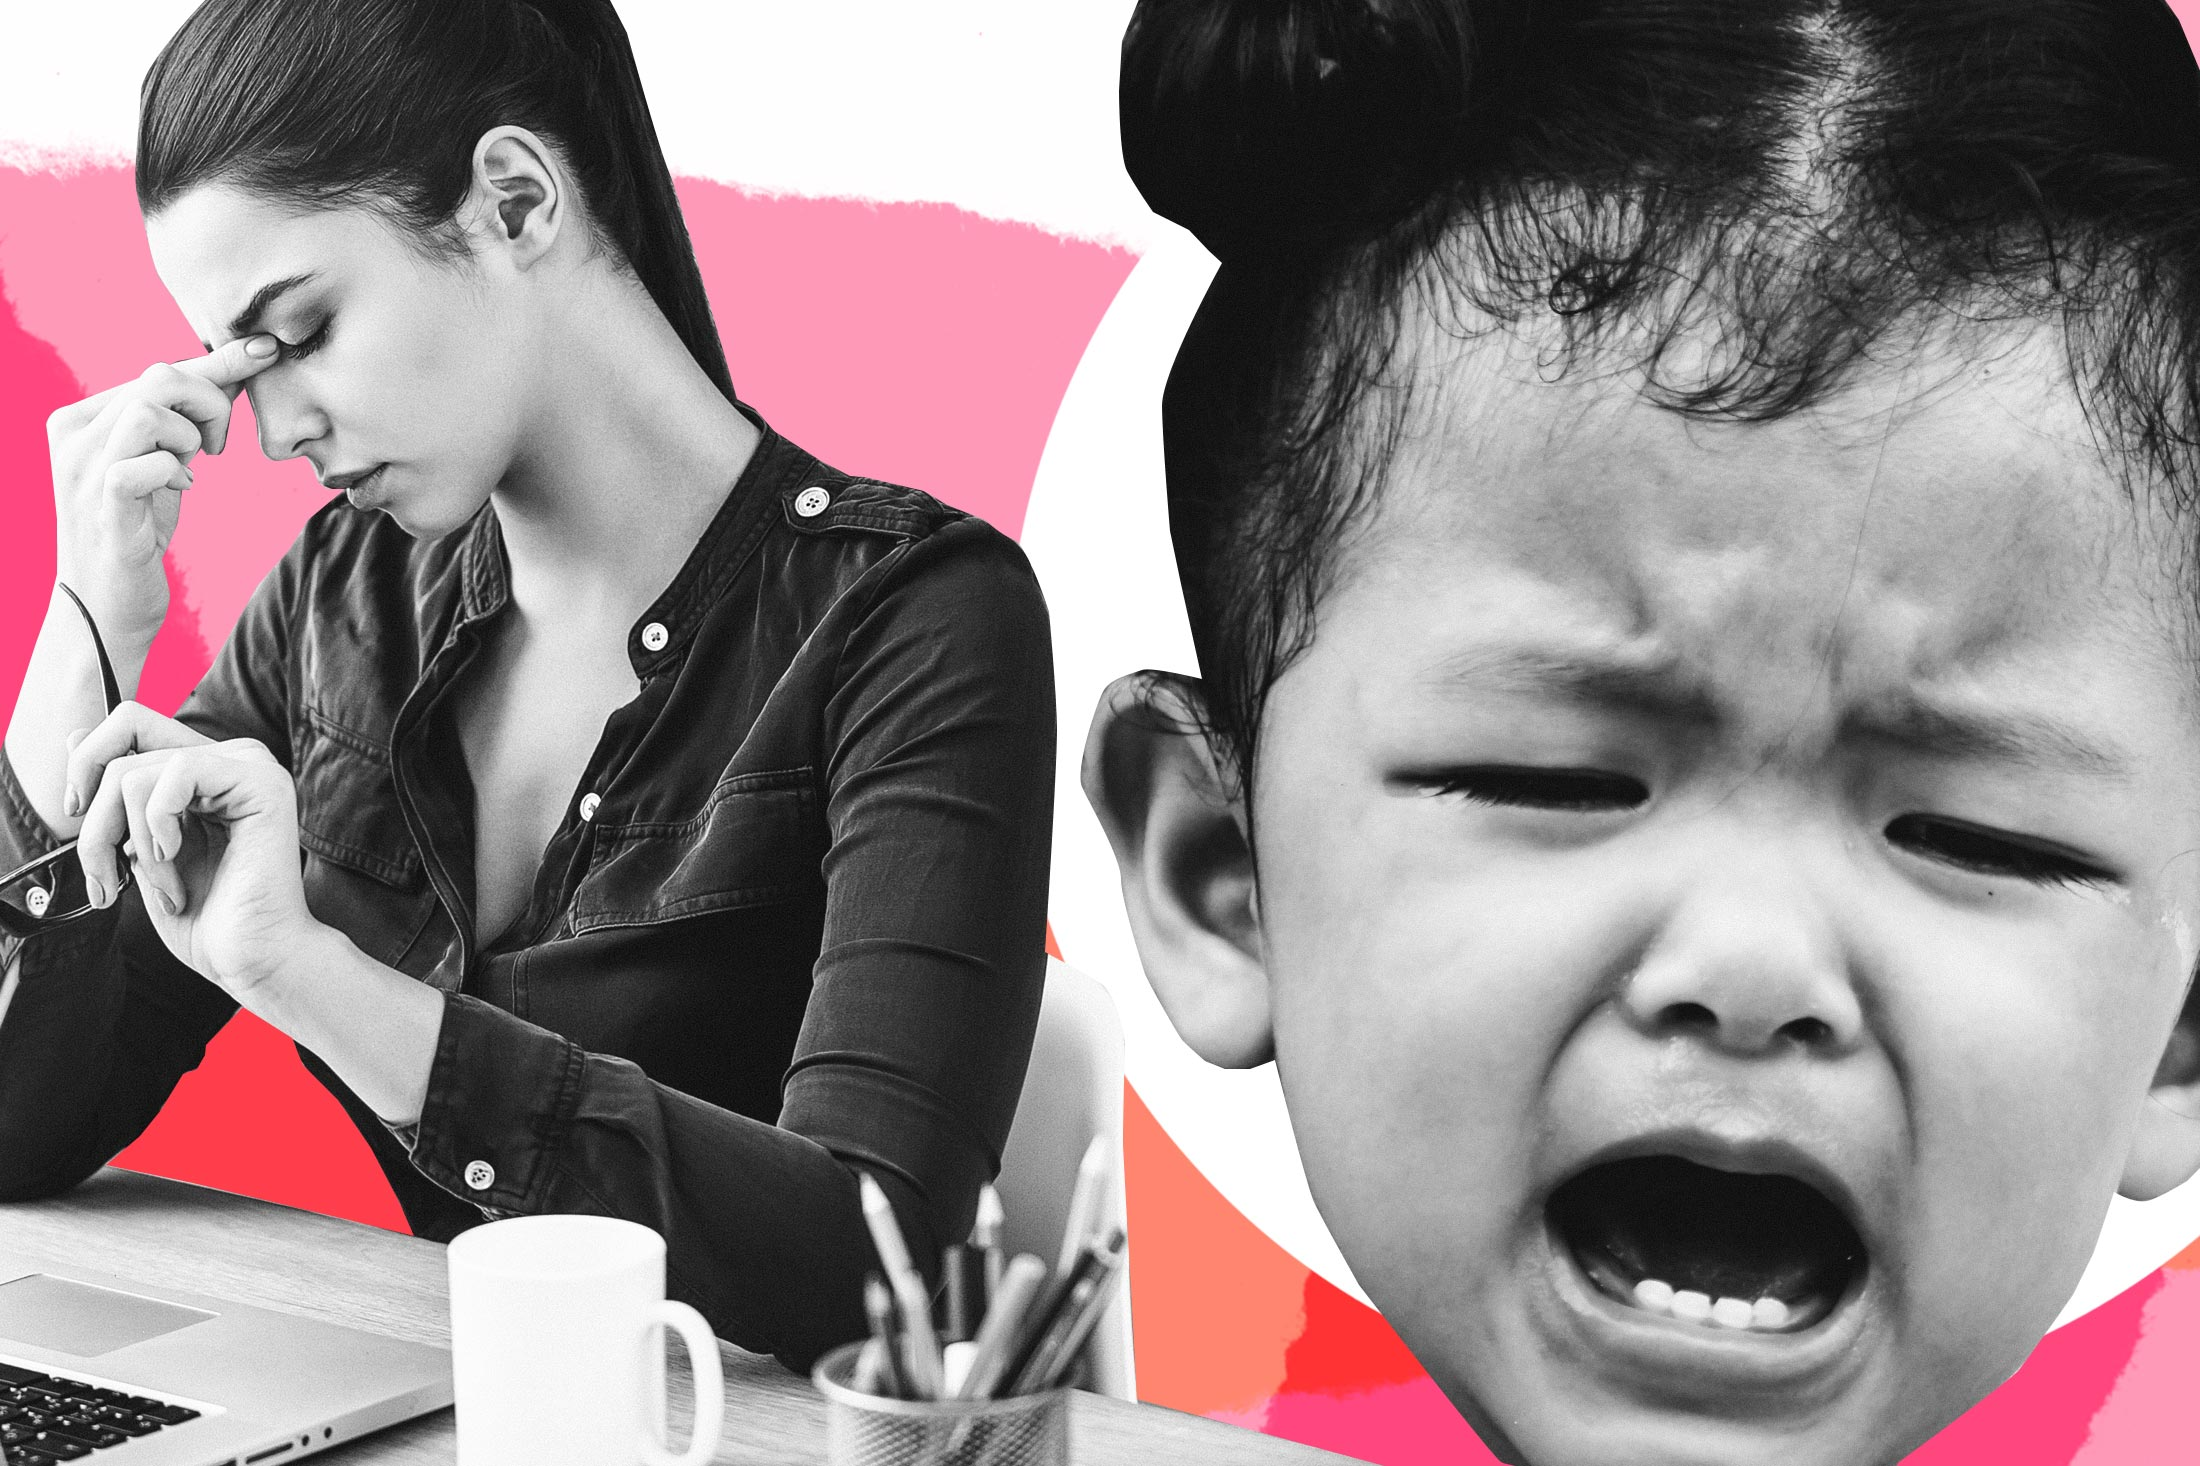 Exasperated woman working at desk, giant crying two year old.